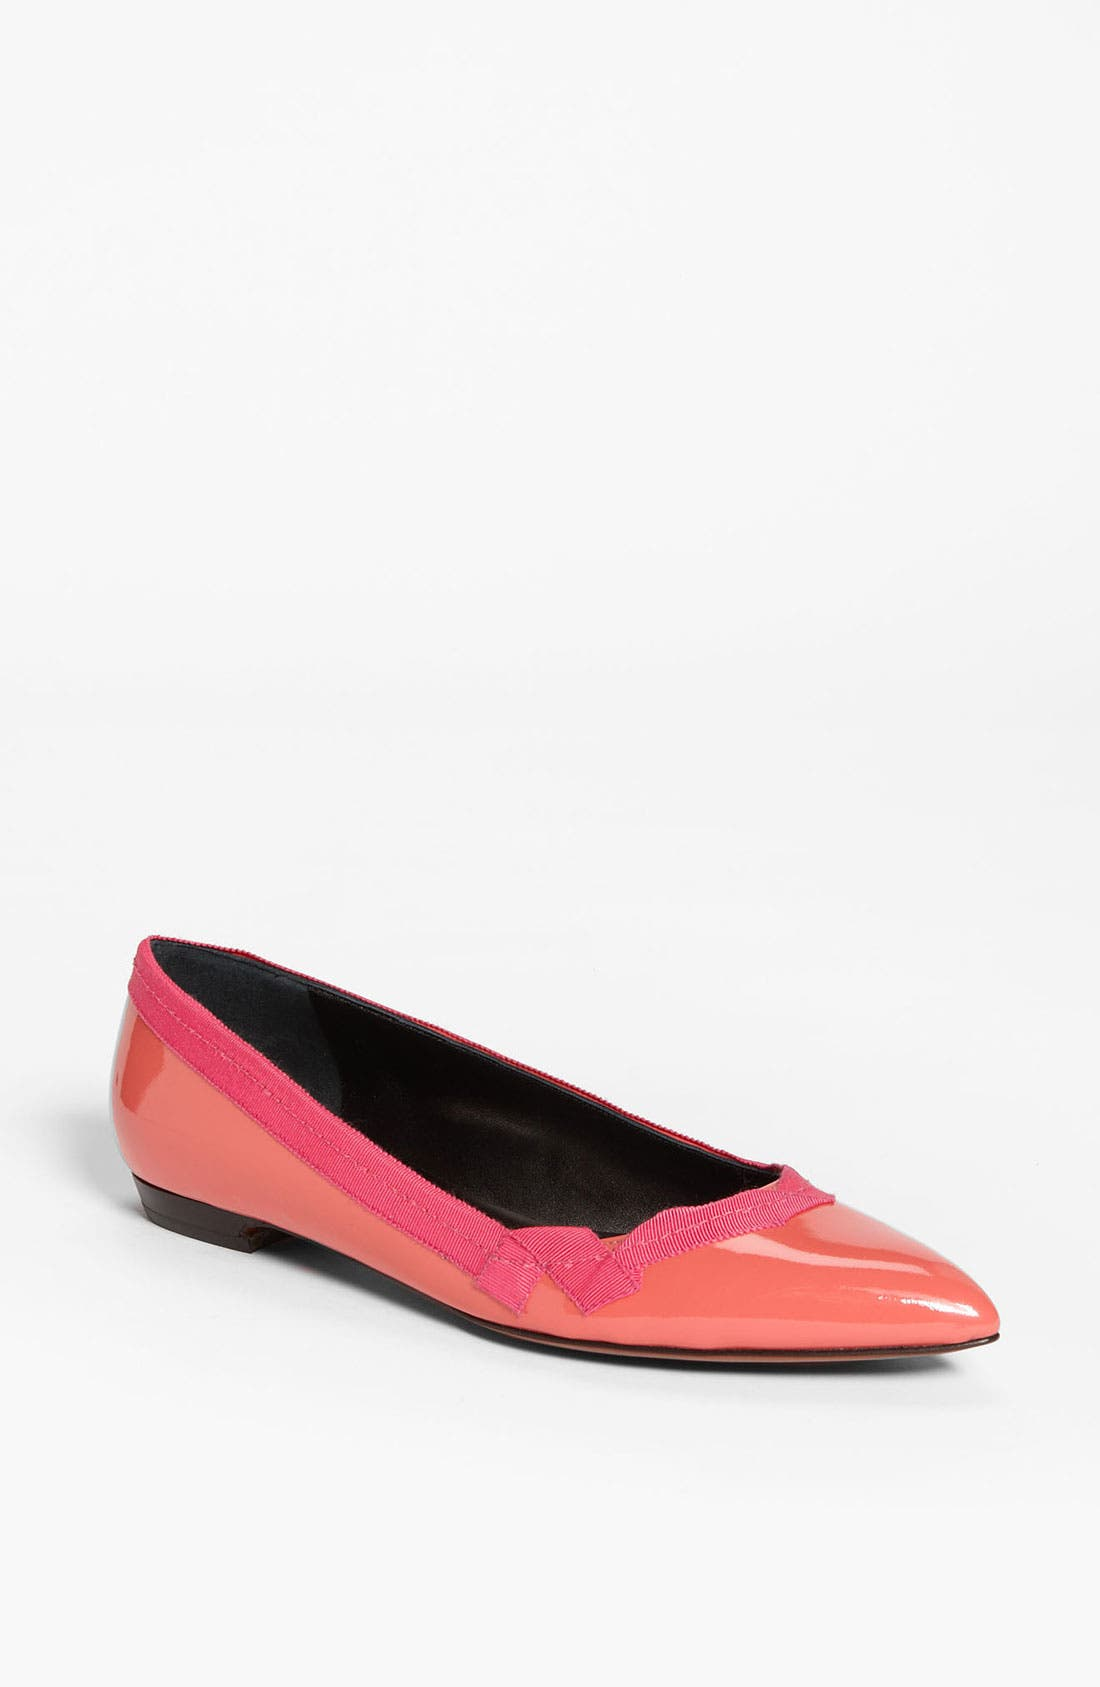 Alternate Image 1 Selected - Lanvin Pointy Toe Grosgrain Flat